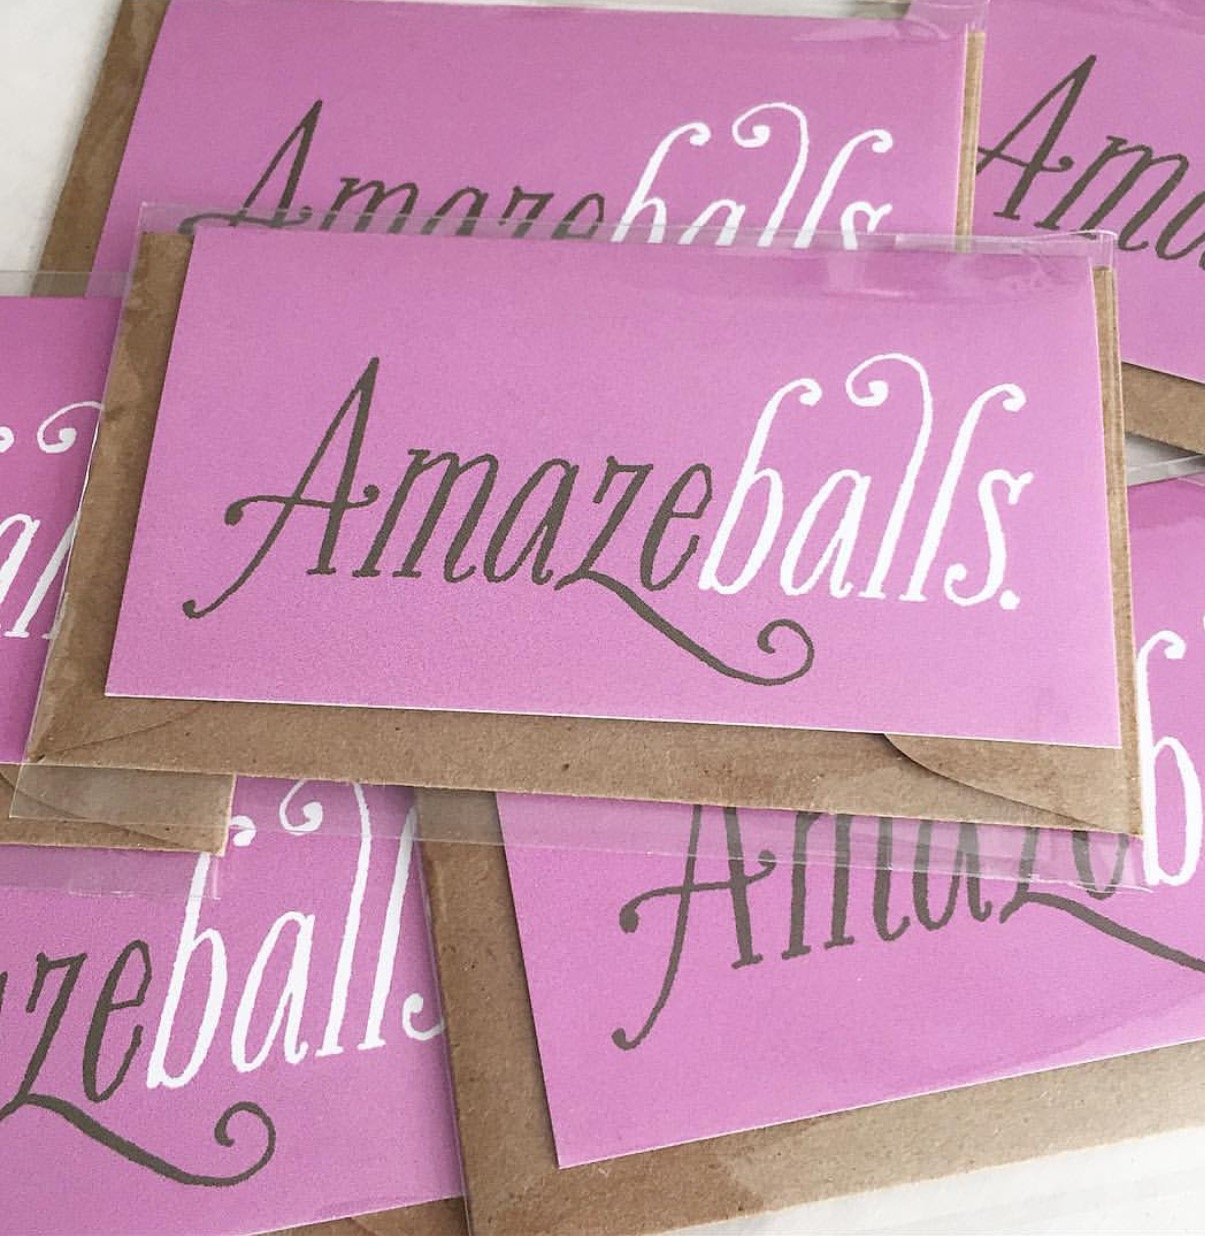 """Our """"Amazeballs"""" card is one of the most colorful, expressive additions to our Mini Breath line. The design is simple and striking, and who doesn't giggle at the word """"Amazeballs""""?"""